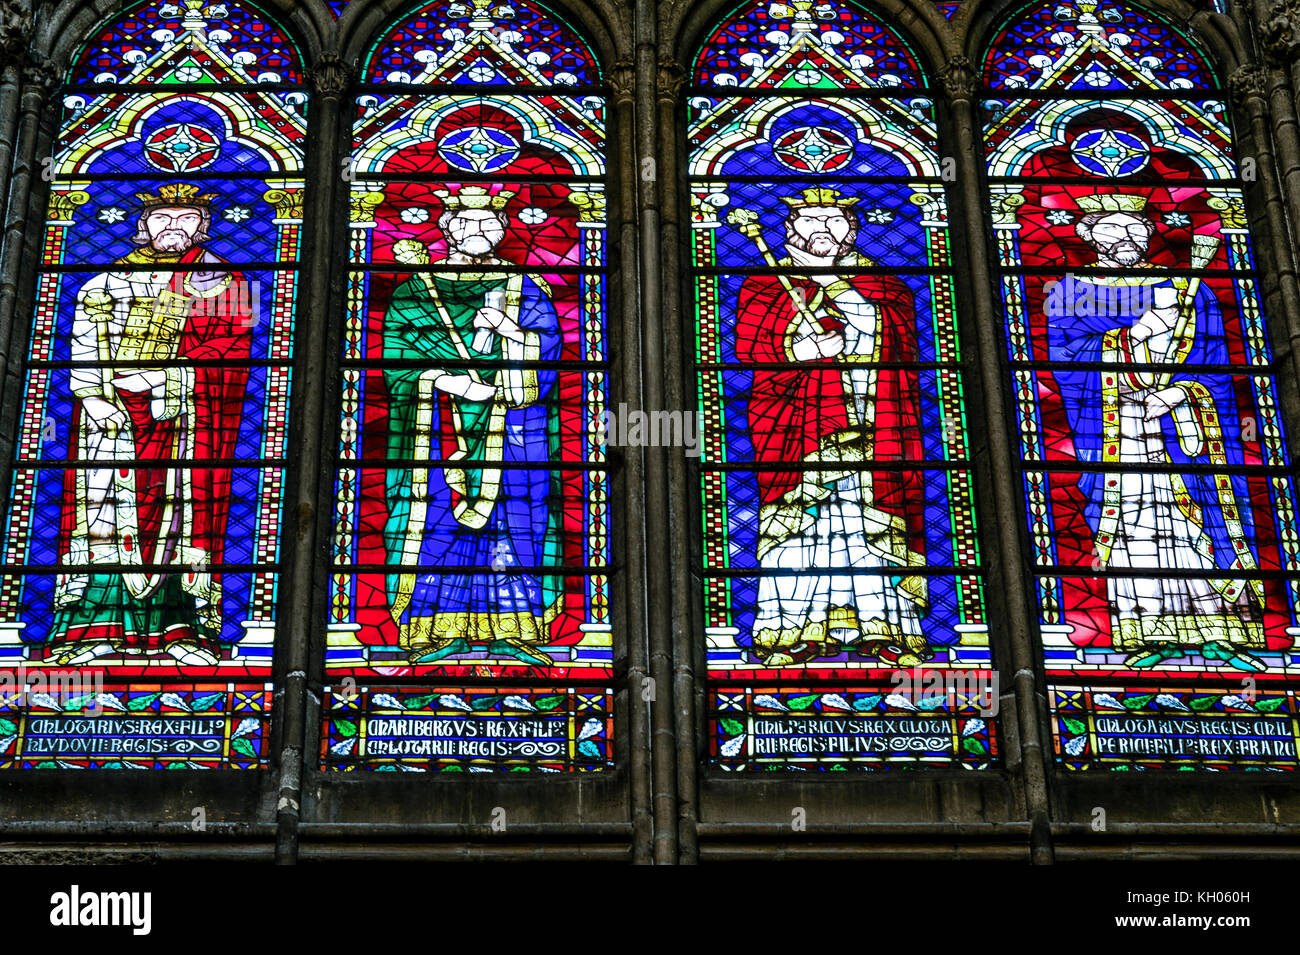 France. Seine-Saint-Denis (93). Basilica of Saint-Denis. Necropolis of the kings of France. Stained glass windows - Stock Image